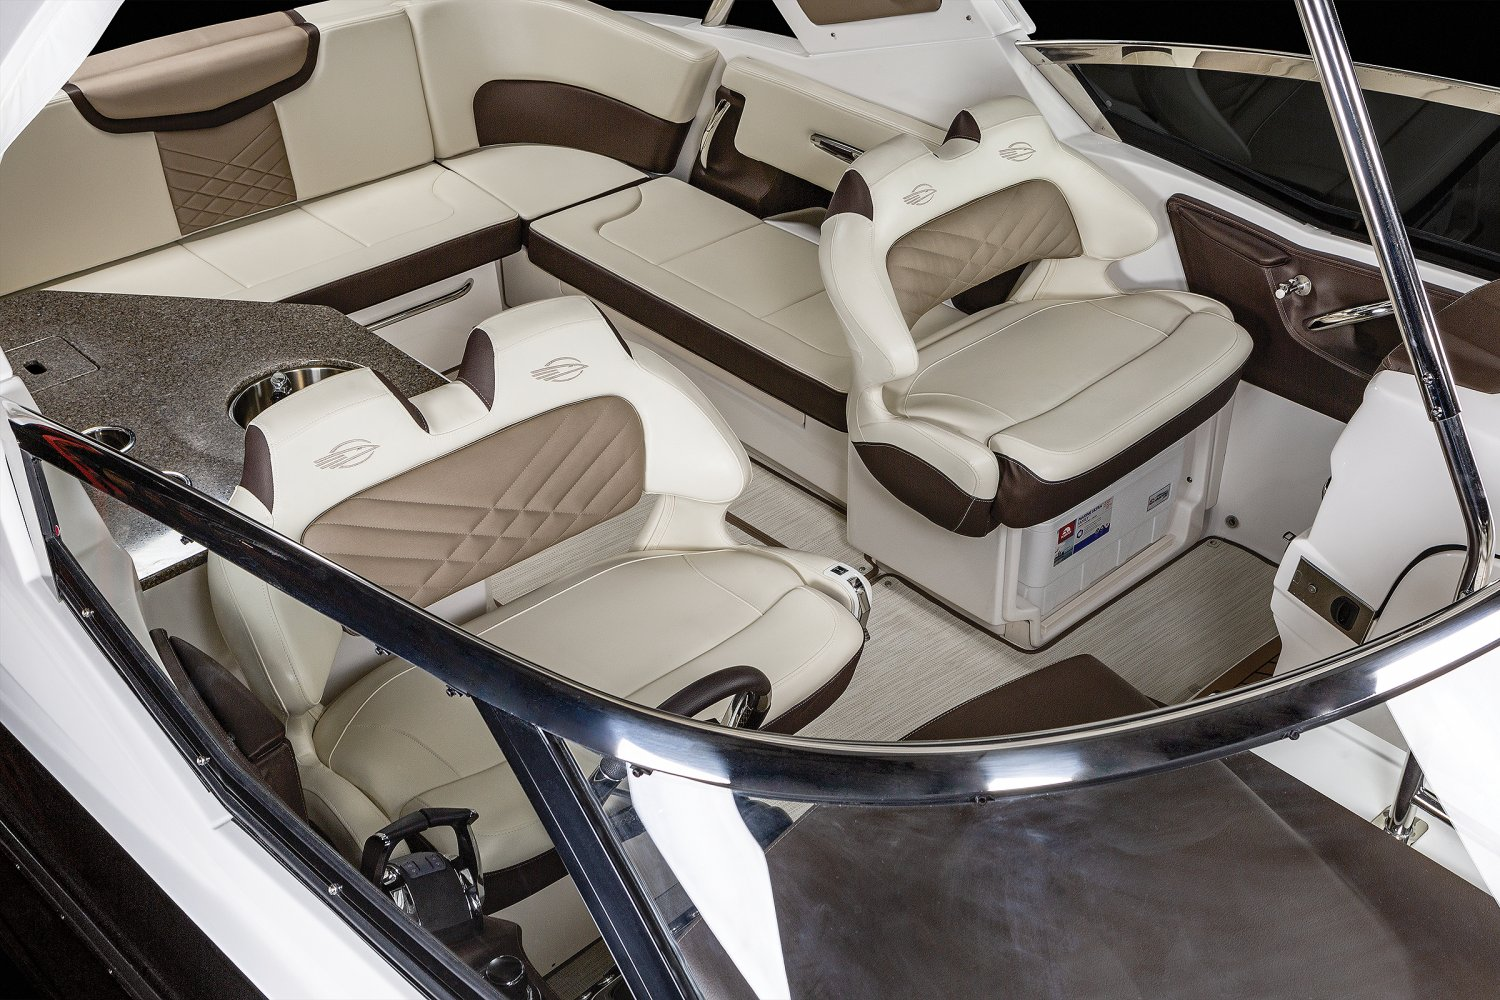 Image of a Black Sides 2021 347   Chaparral Boats. Our track record speaks for itself. Seeing Chaparral on top when it comes to performance, styling, value and innovation should come as no surprise... we've won more than 30 awards for product excellence, a feat few can claim.